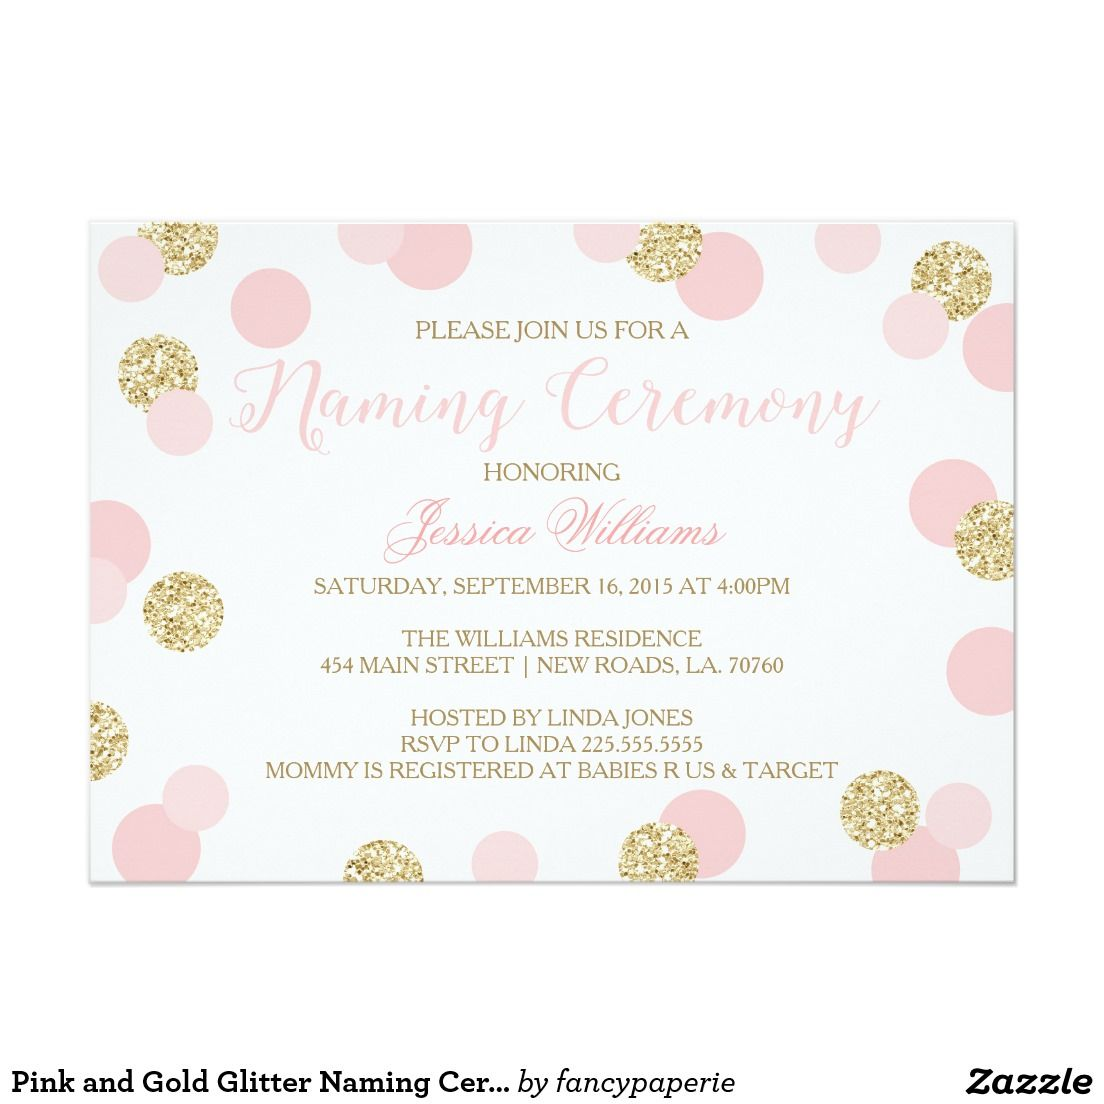 Pink And Gold Glitter Naming Ceremony Invites  Naming Ceremony